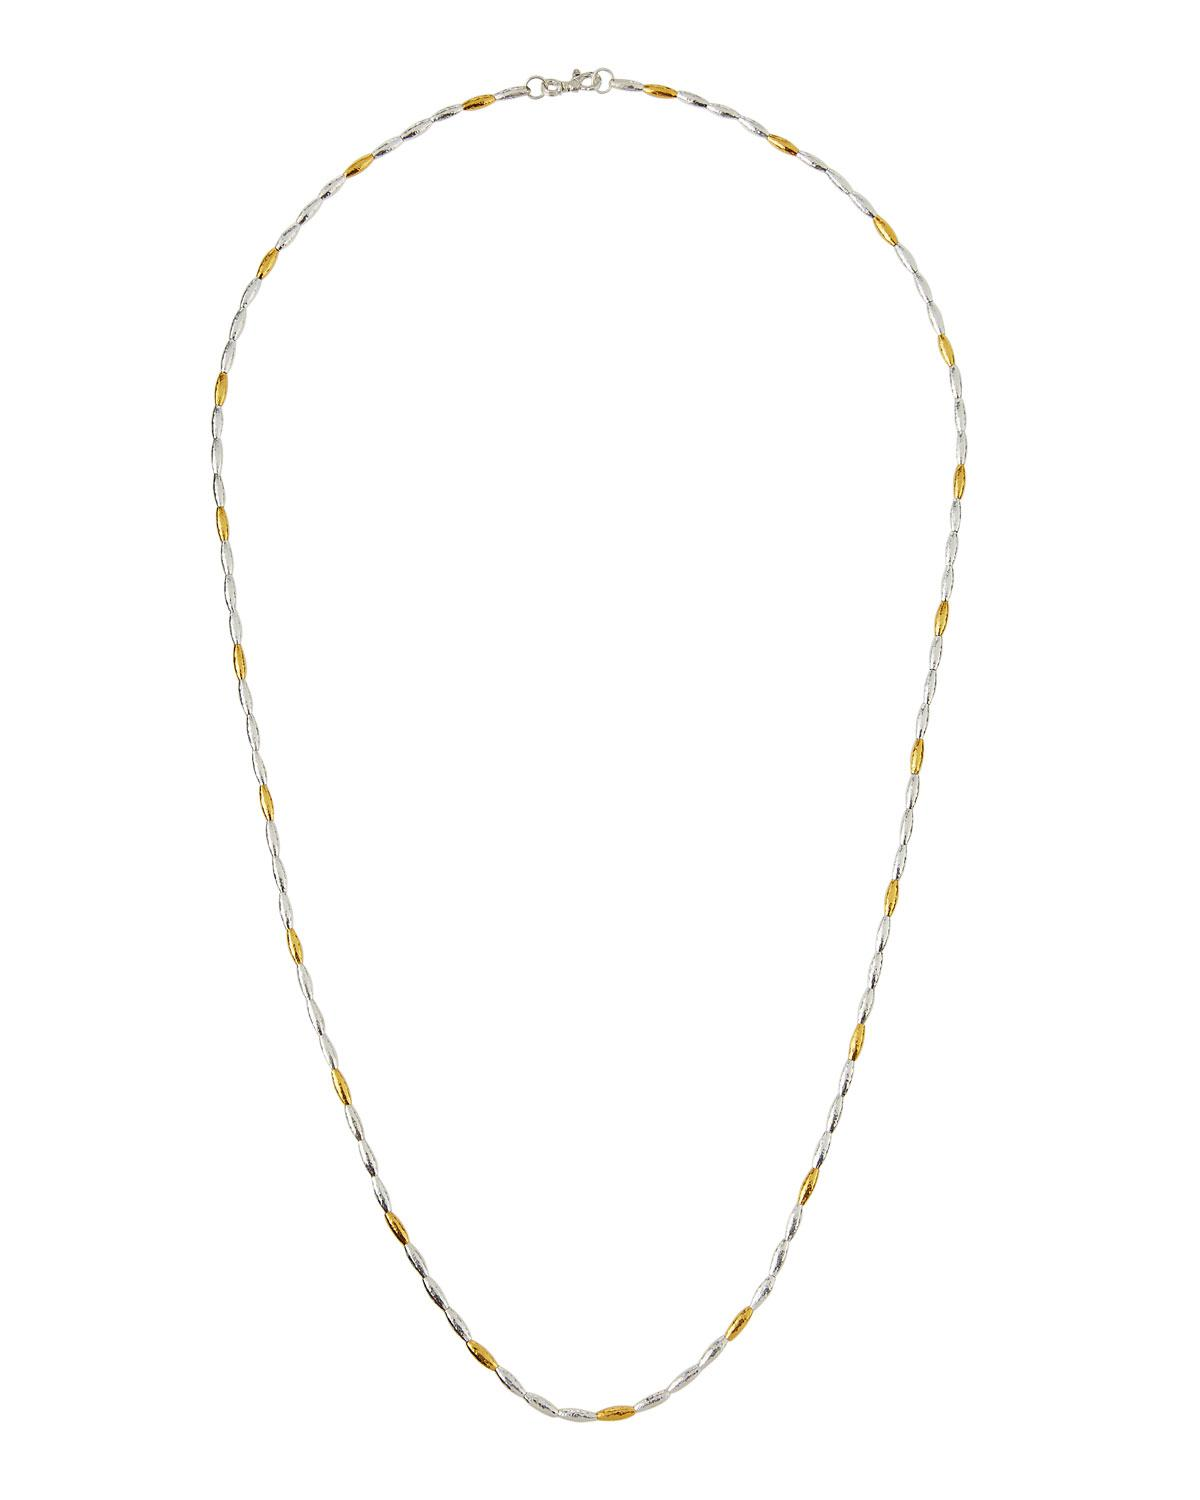 Gurhan Wheat Two-Tone Beaded Long Necklace, 36L